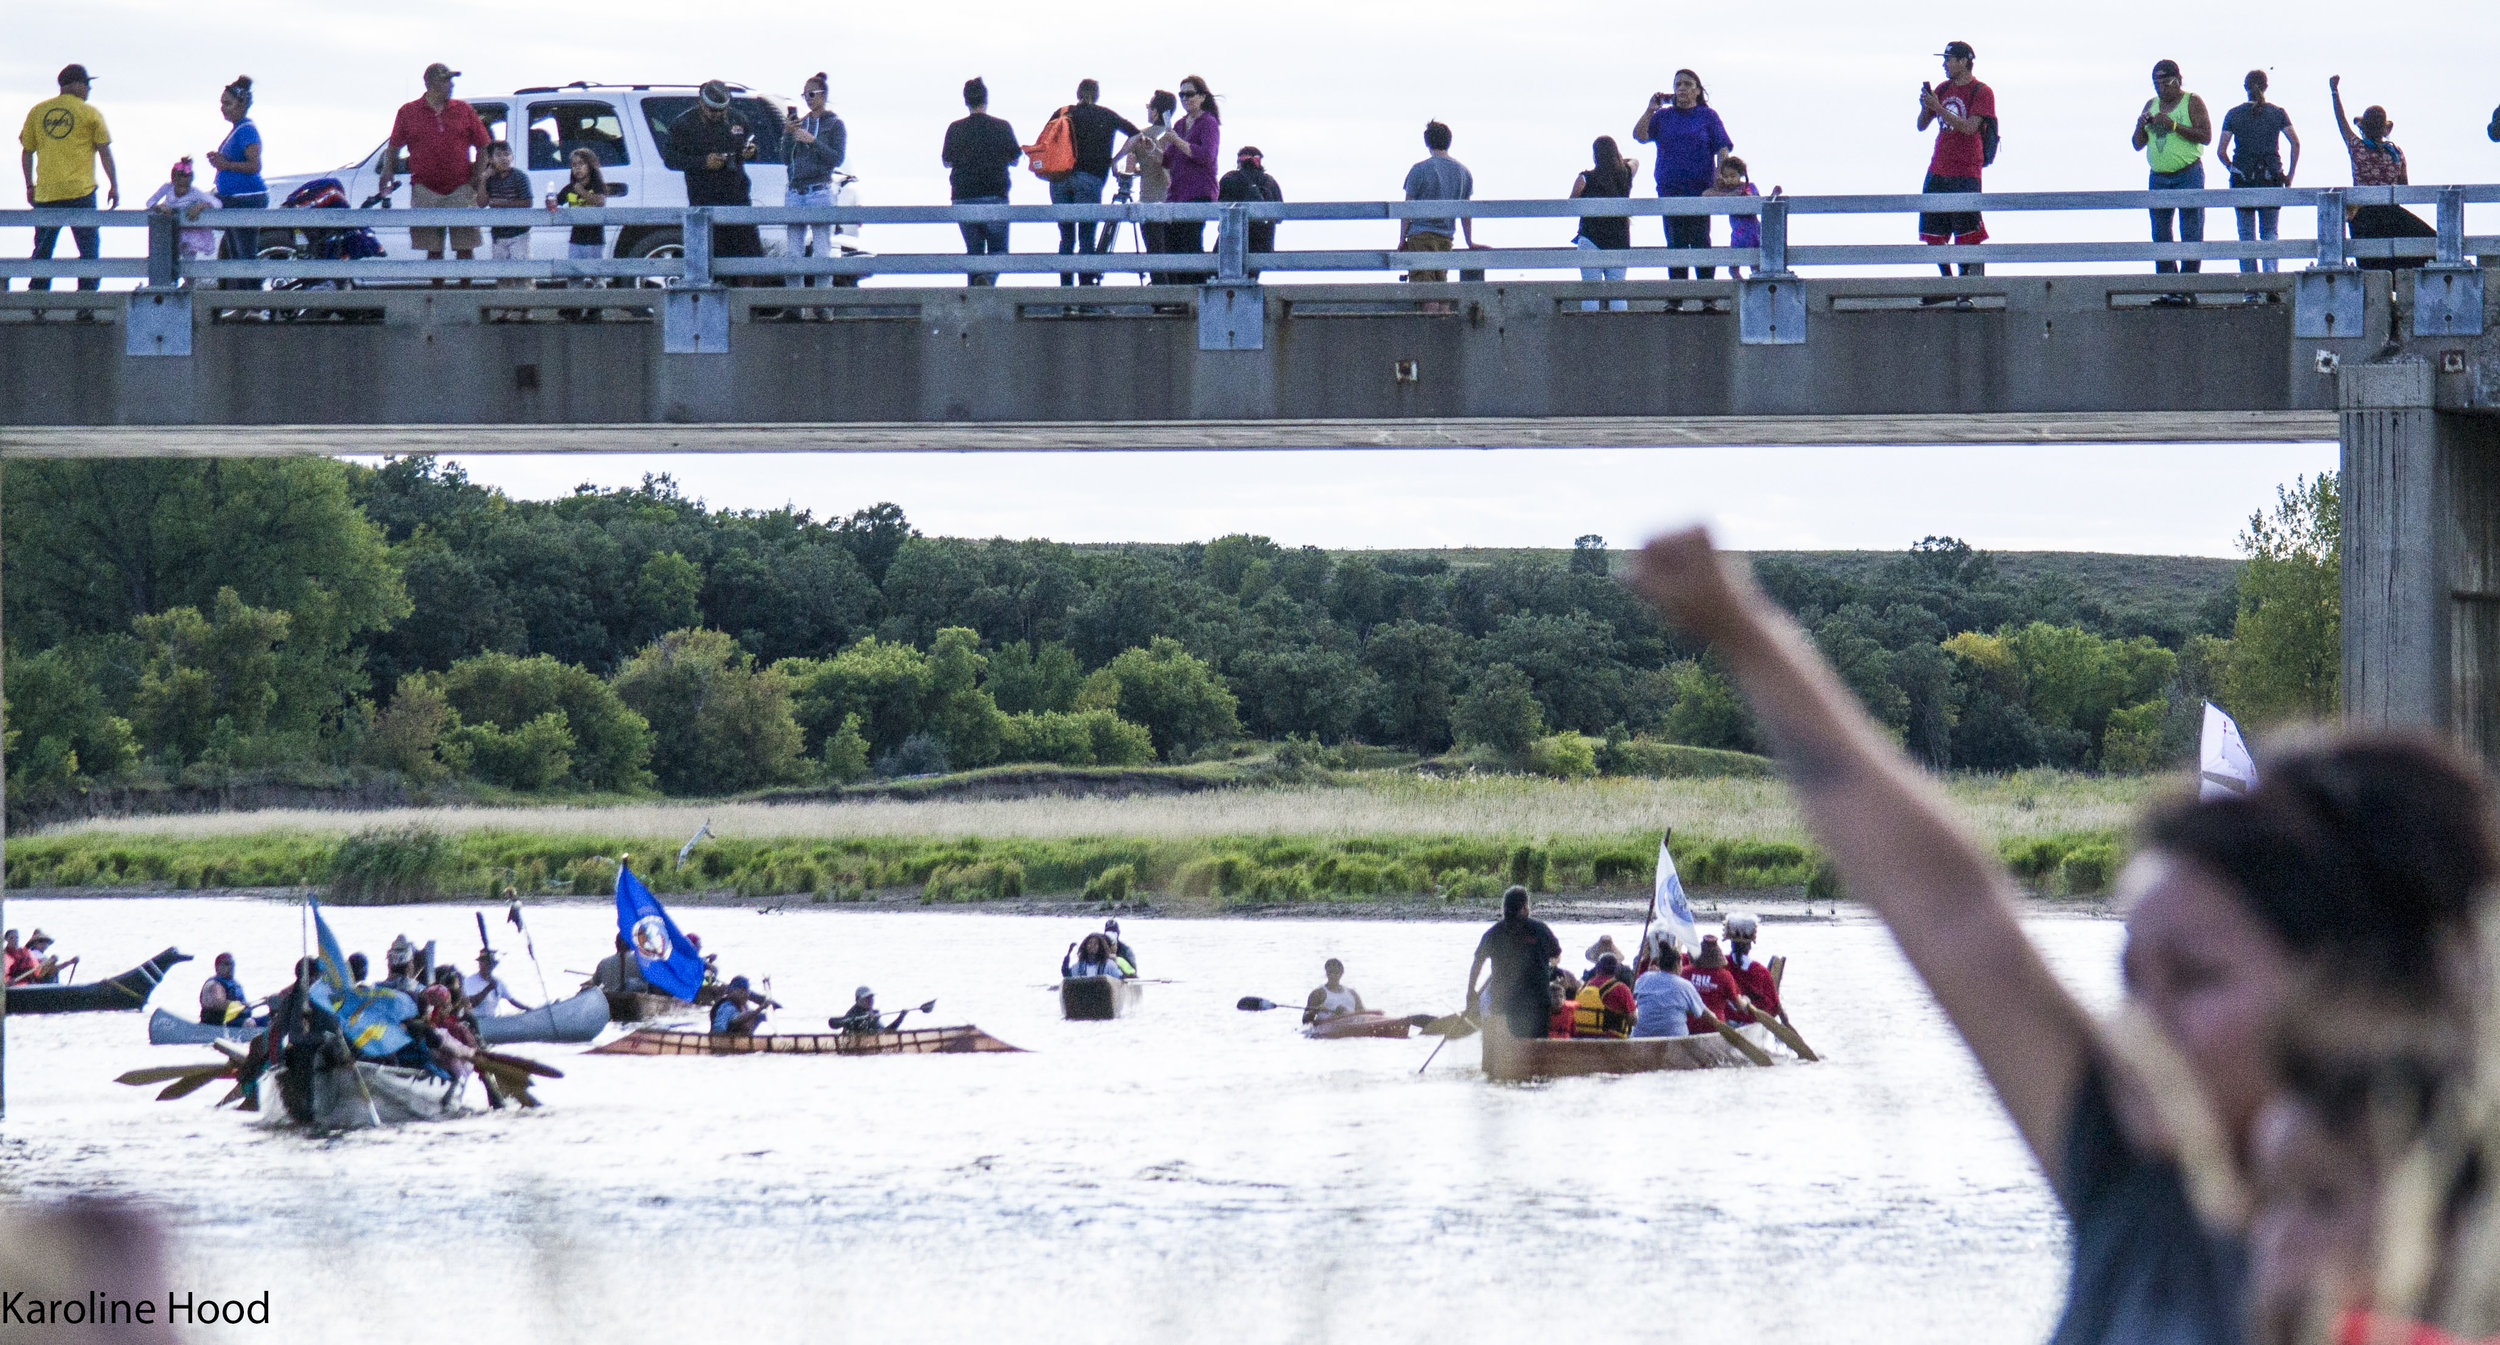 Different tribes came by Canoe to join other tribes at standing rock. We waited on the banks for the Canoes.